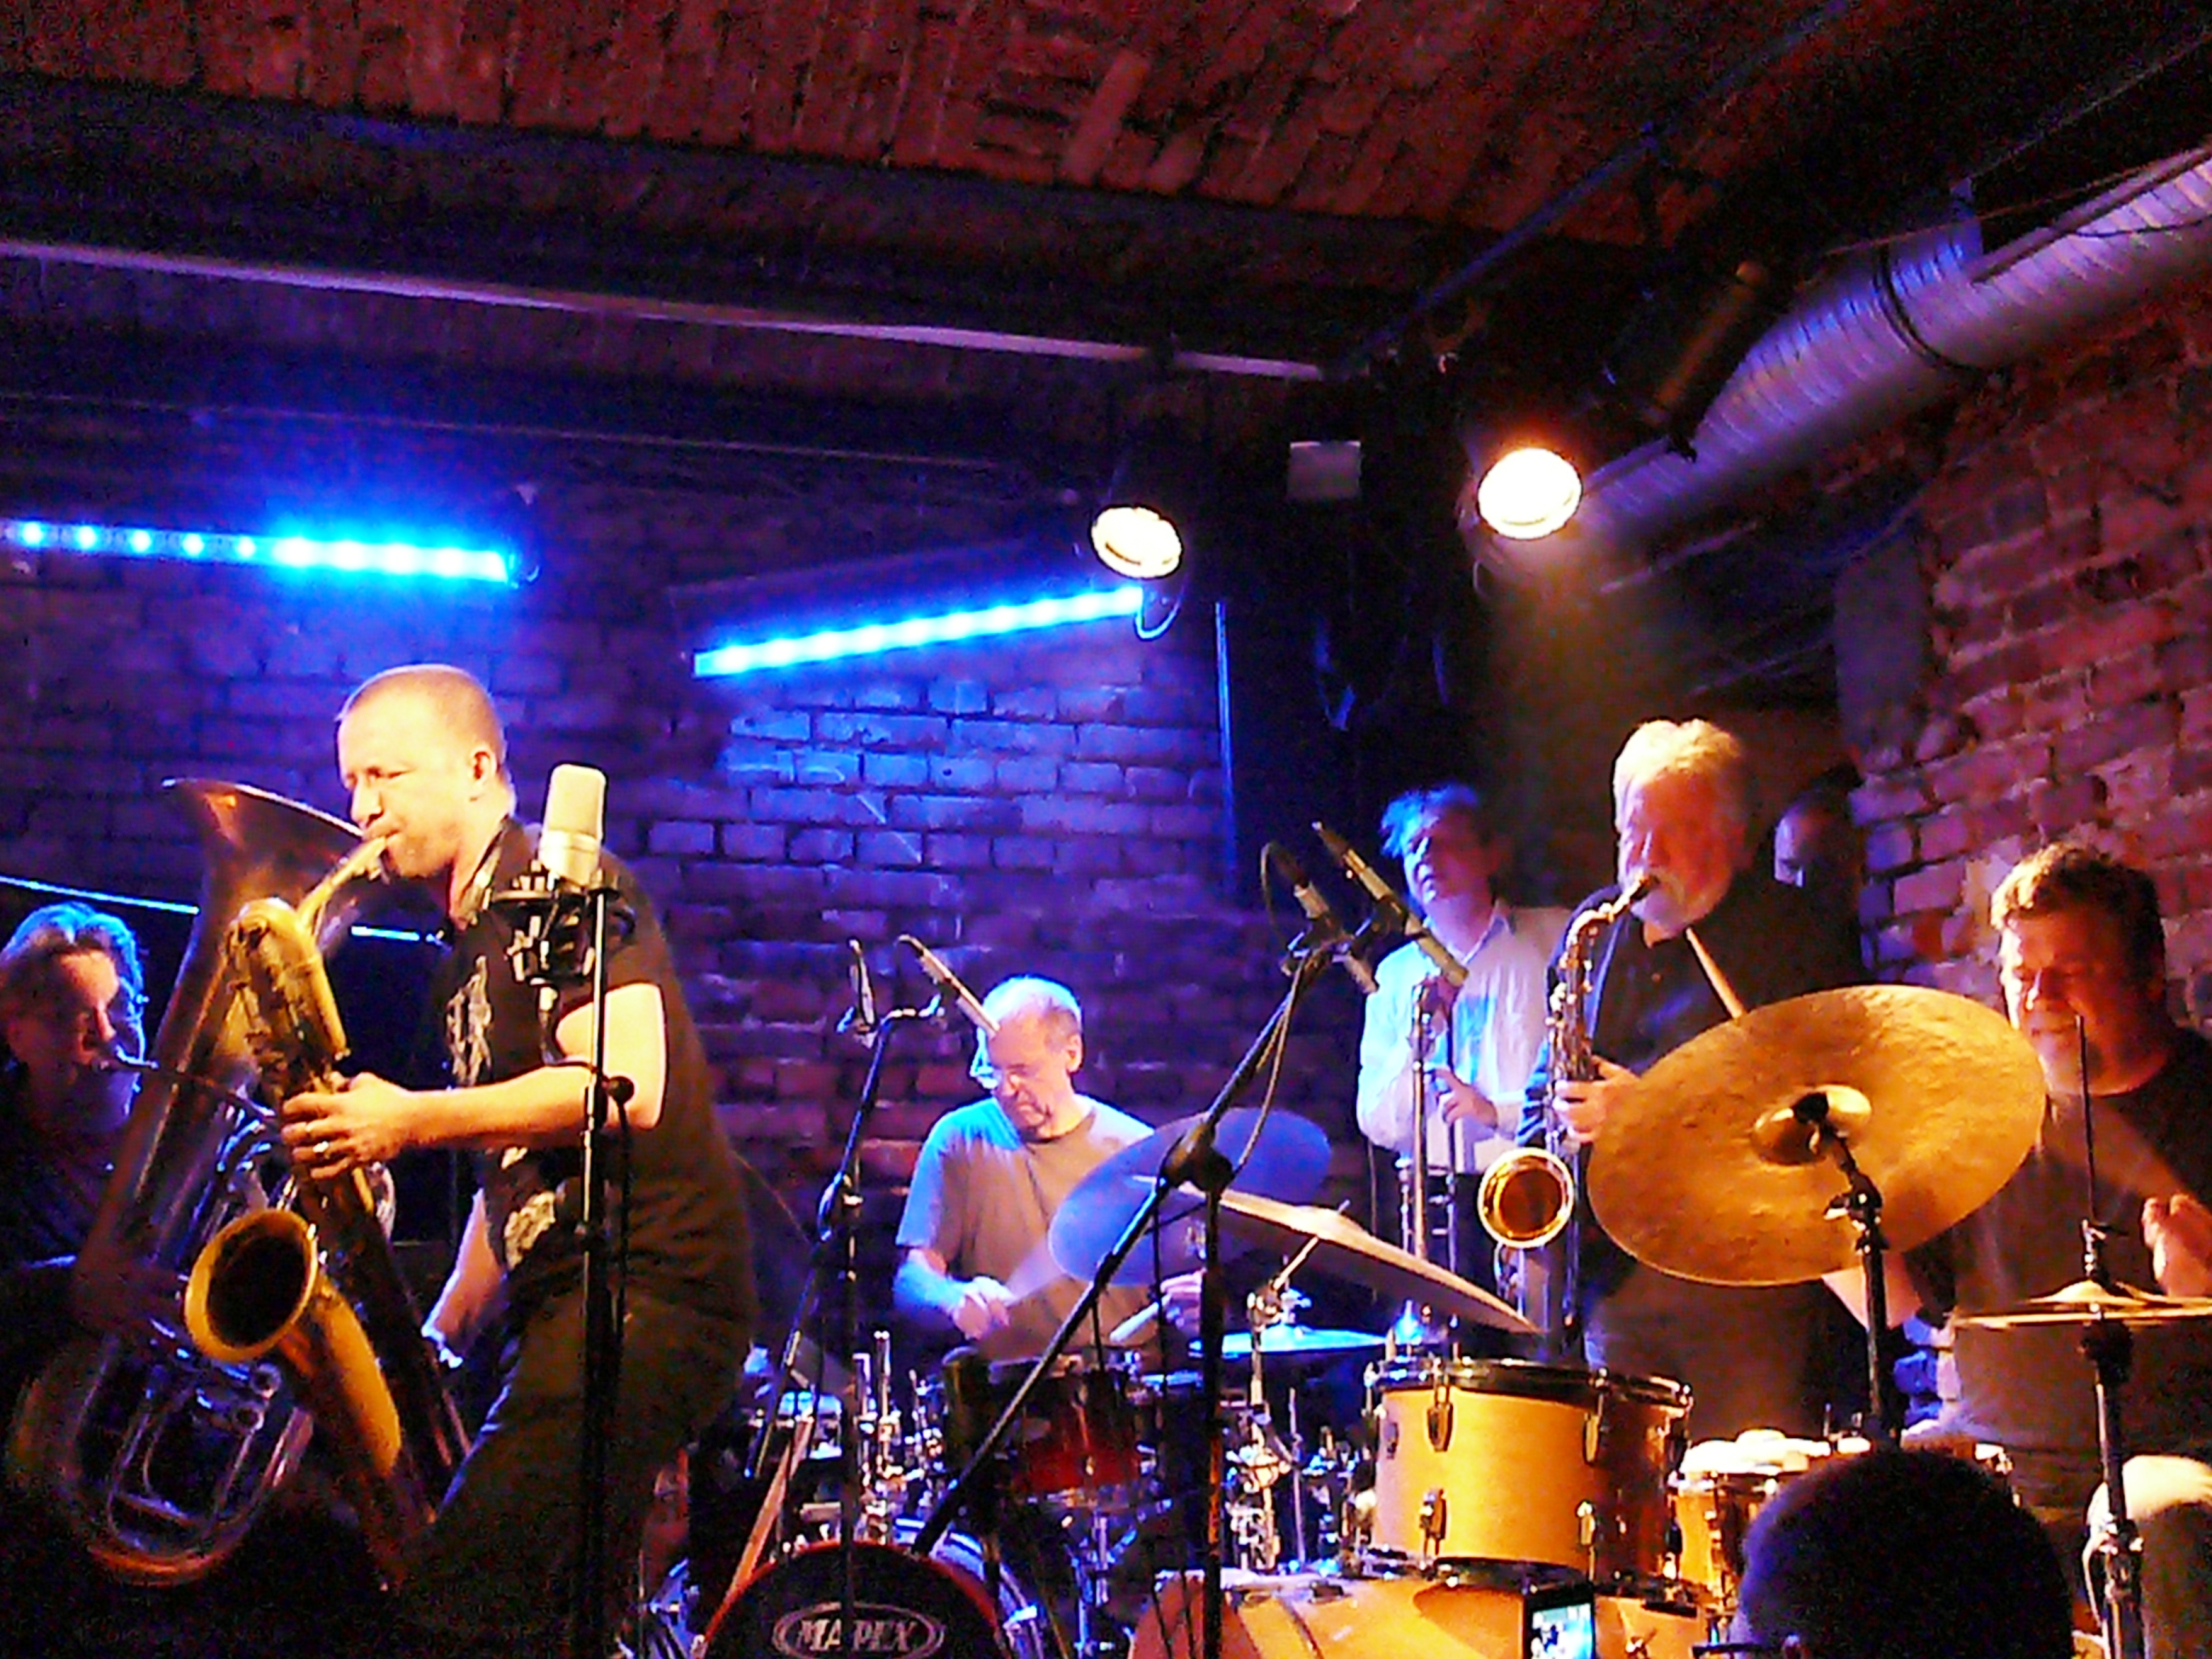 Mats Gustafsson, Paul Lytton, Johannes Bauer, Evan Parker and Raymond Strid at Alchemia, Krakow in November 2012